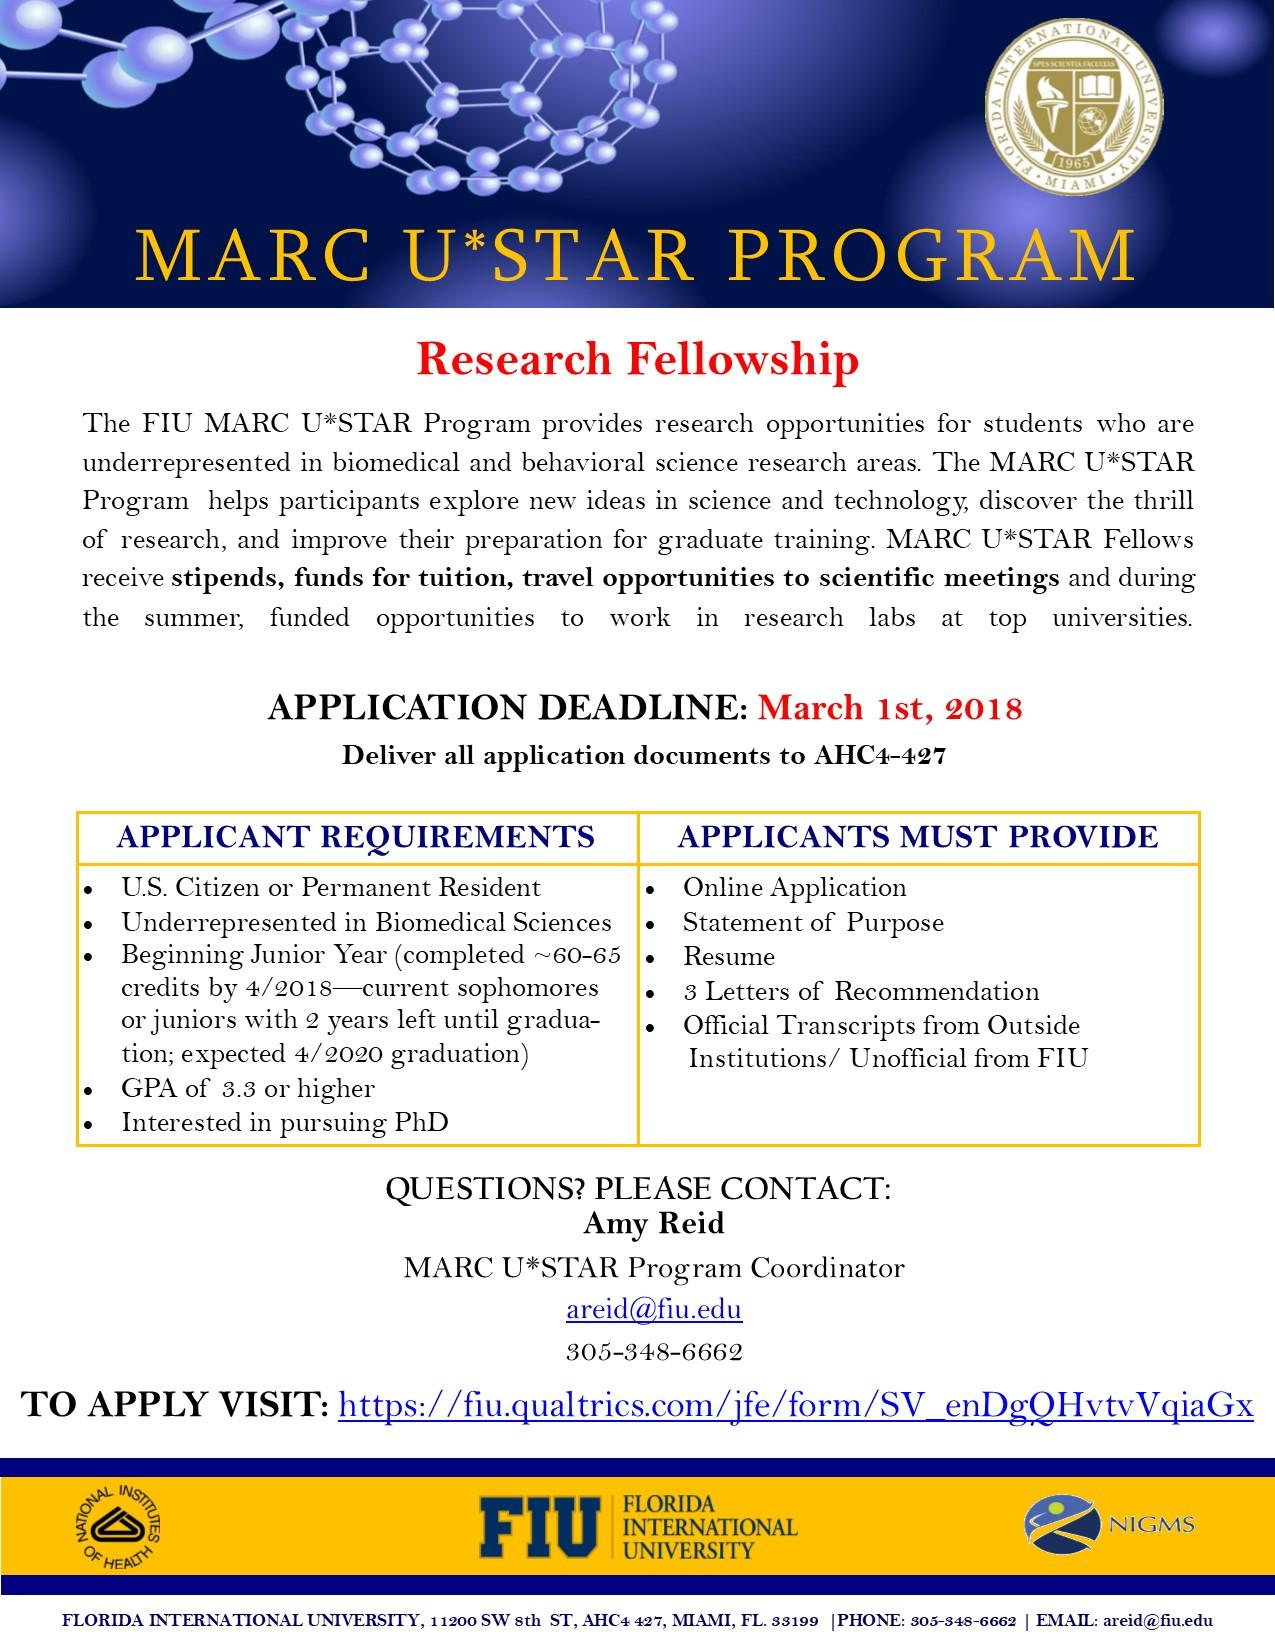 click here for more details click here to learn more about marc ustar application is now closed